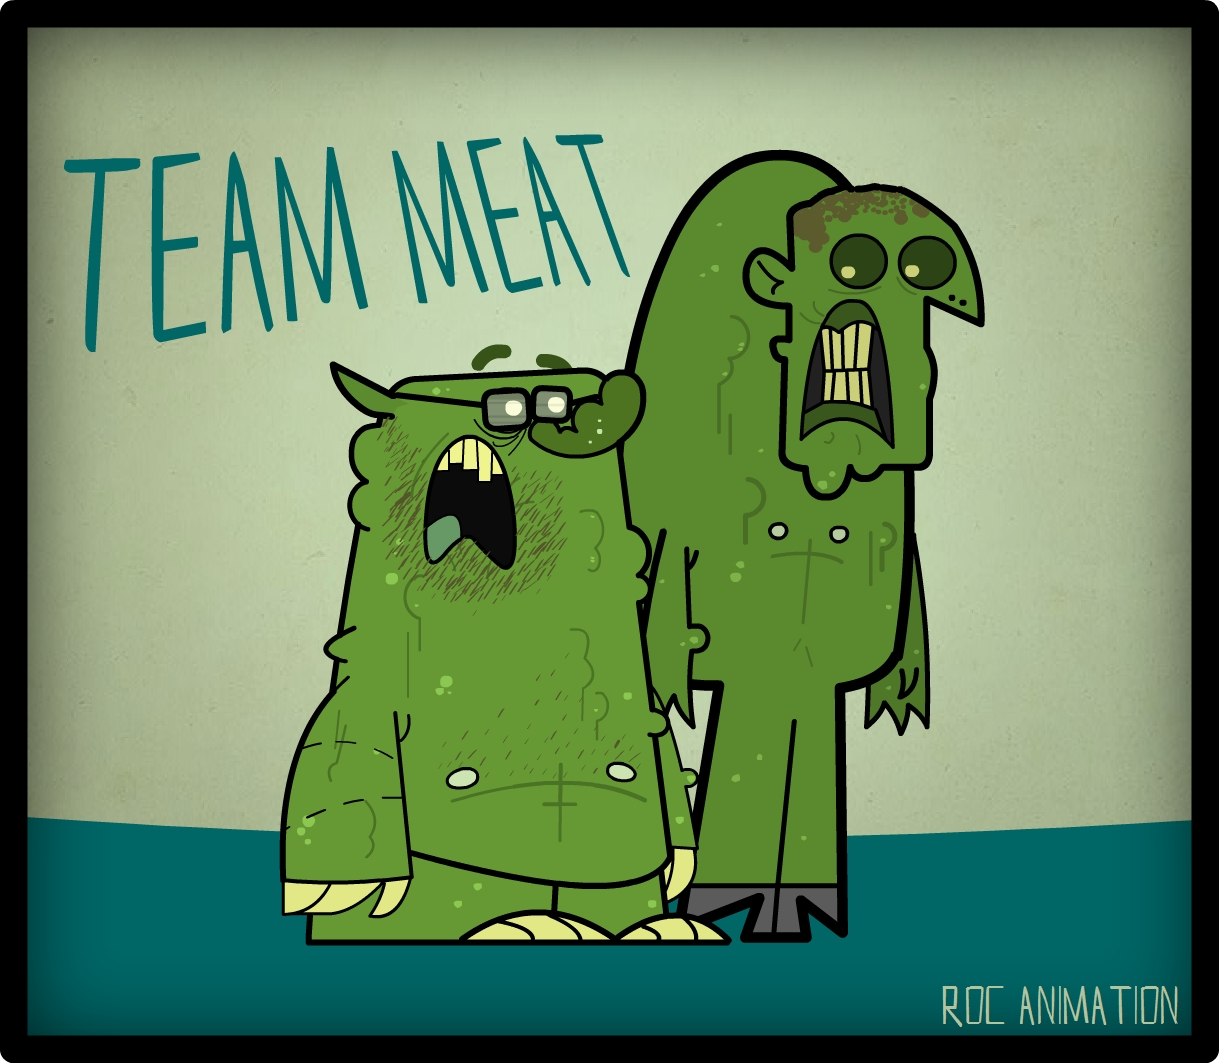 team meat!